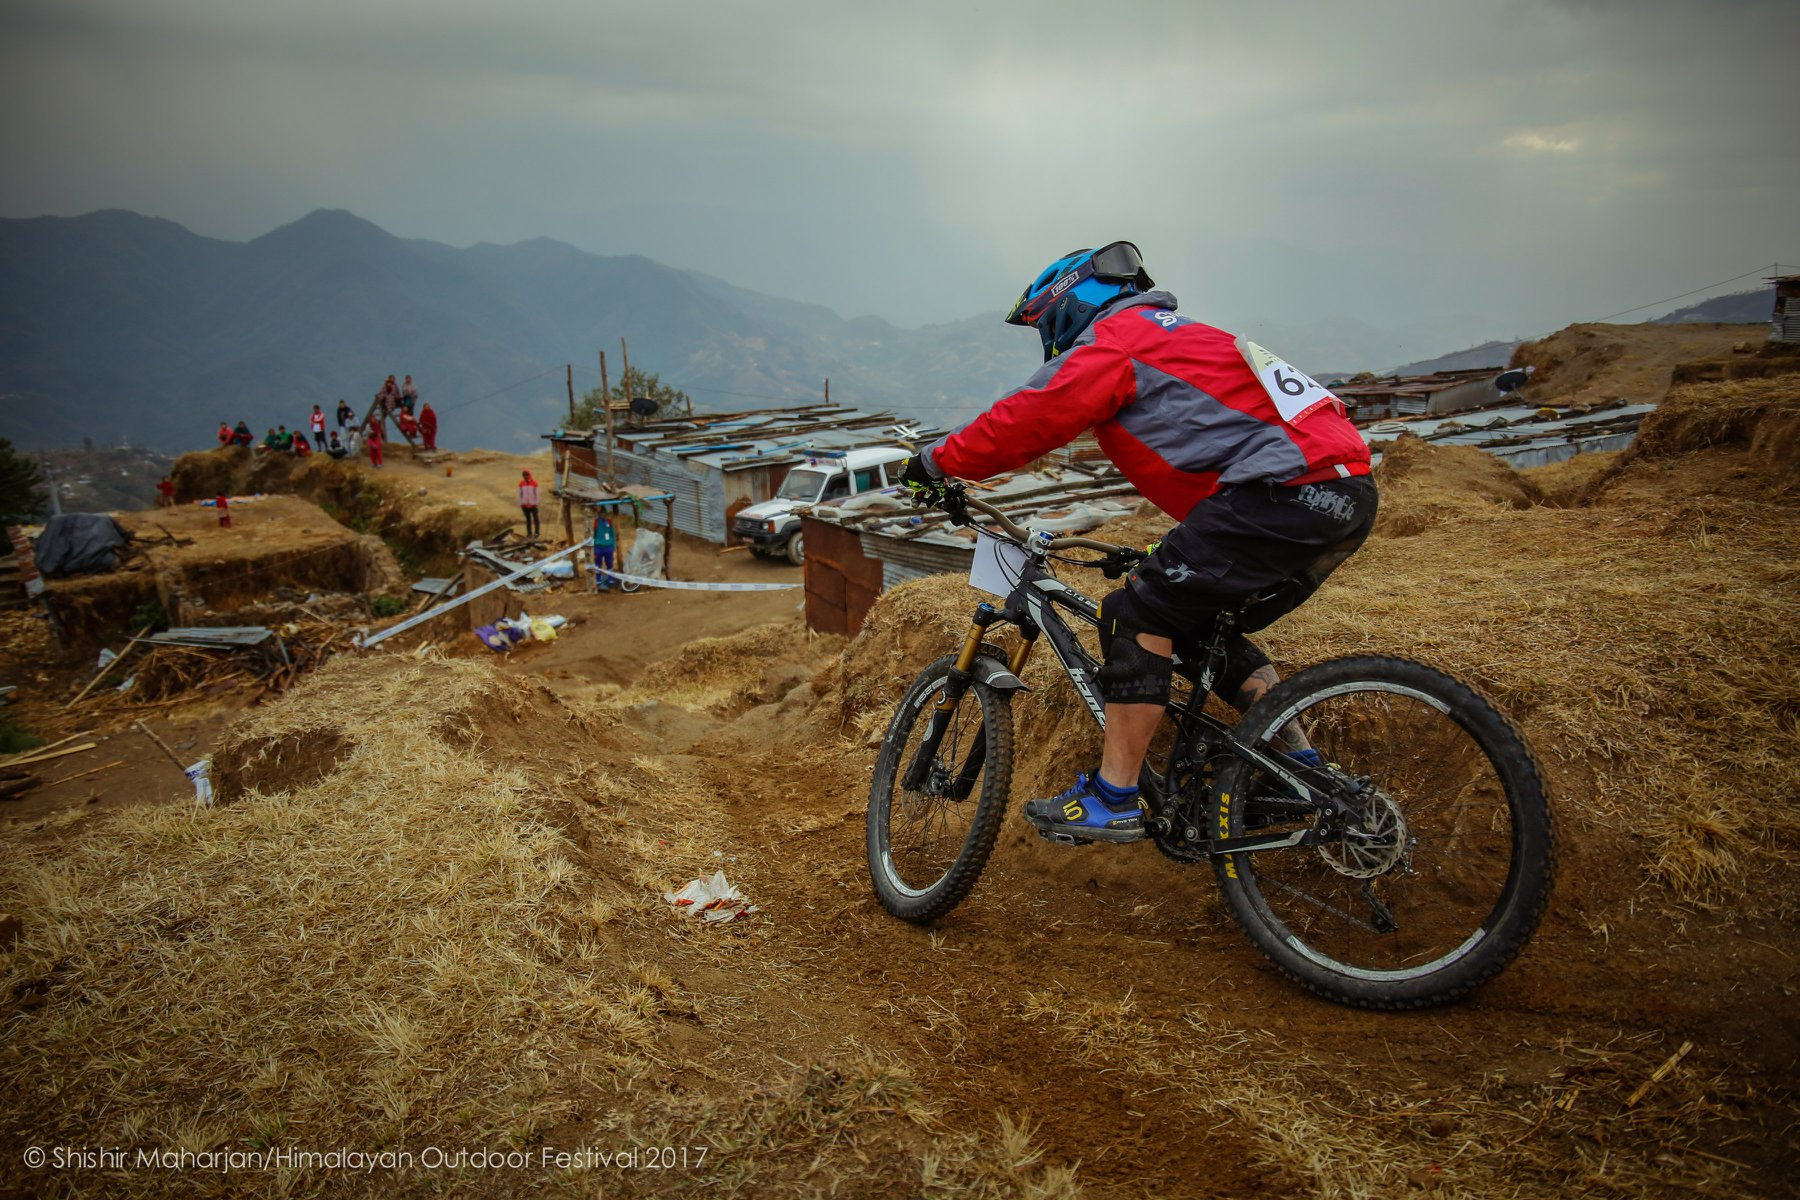 Mountain Biking in Nepal at the Himalayan Outdoor Festival